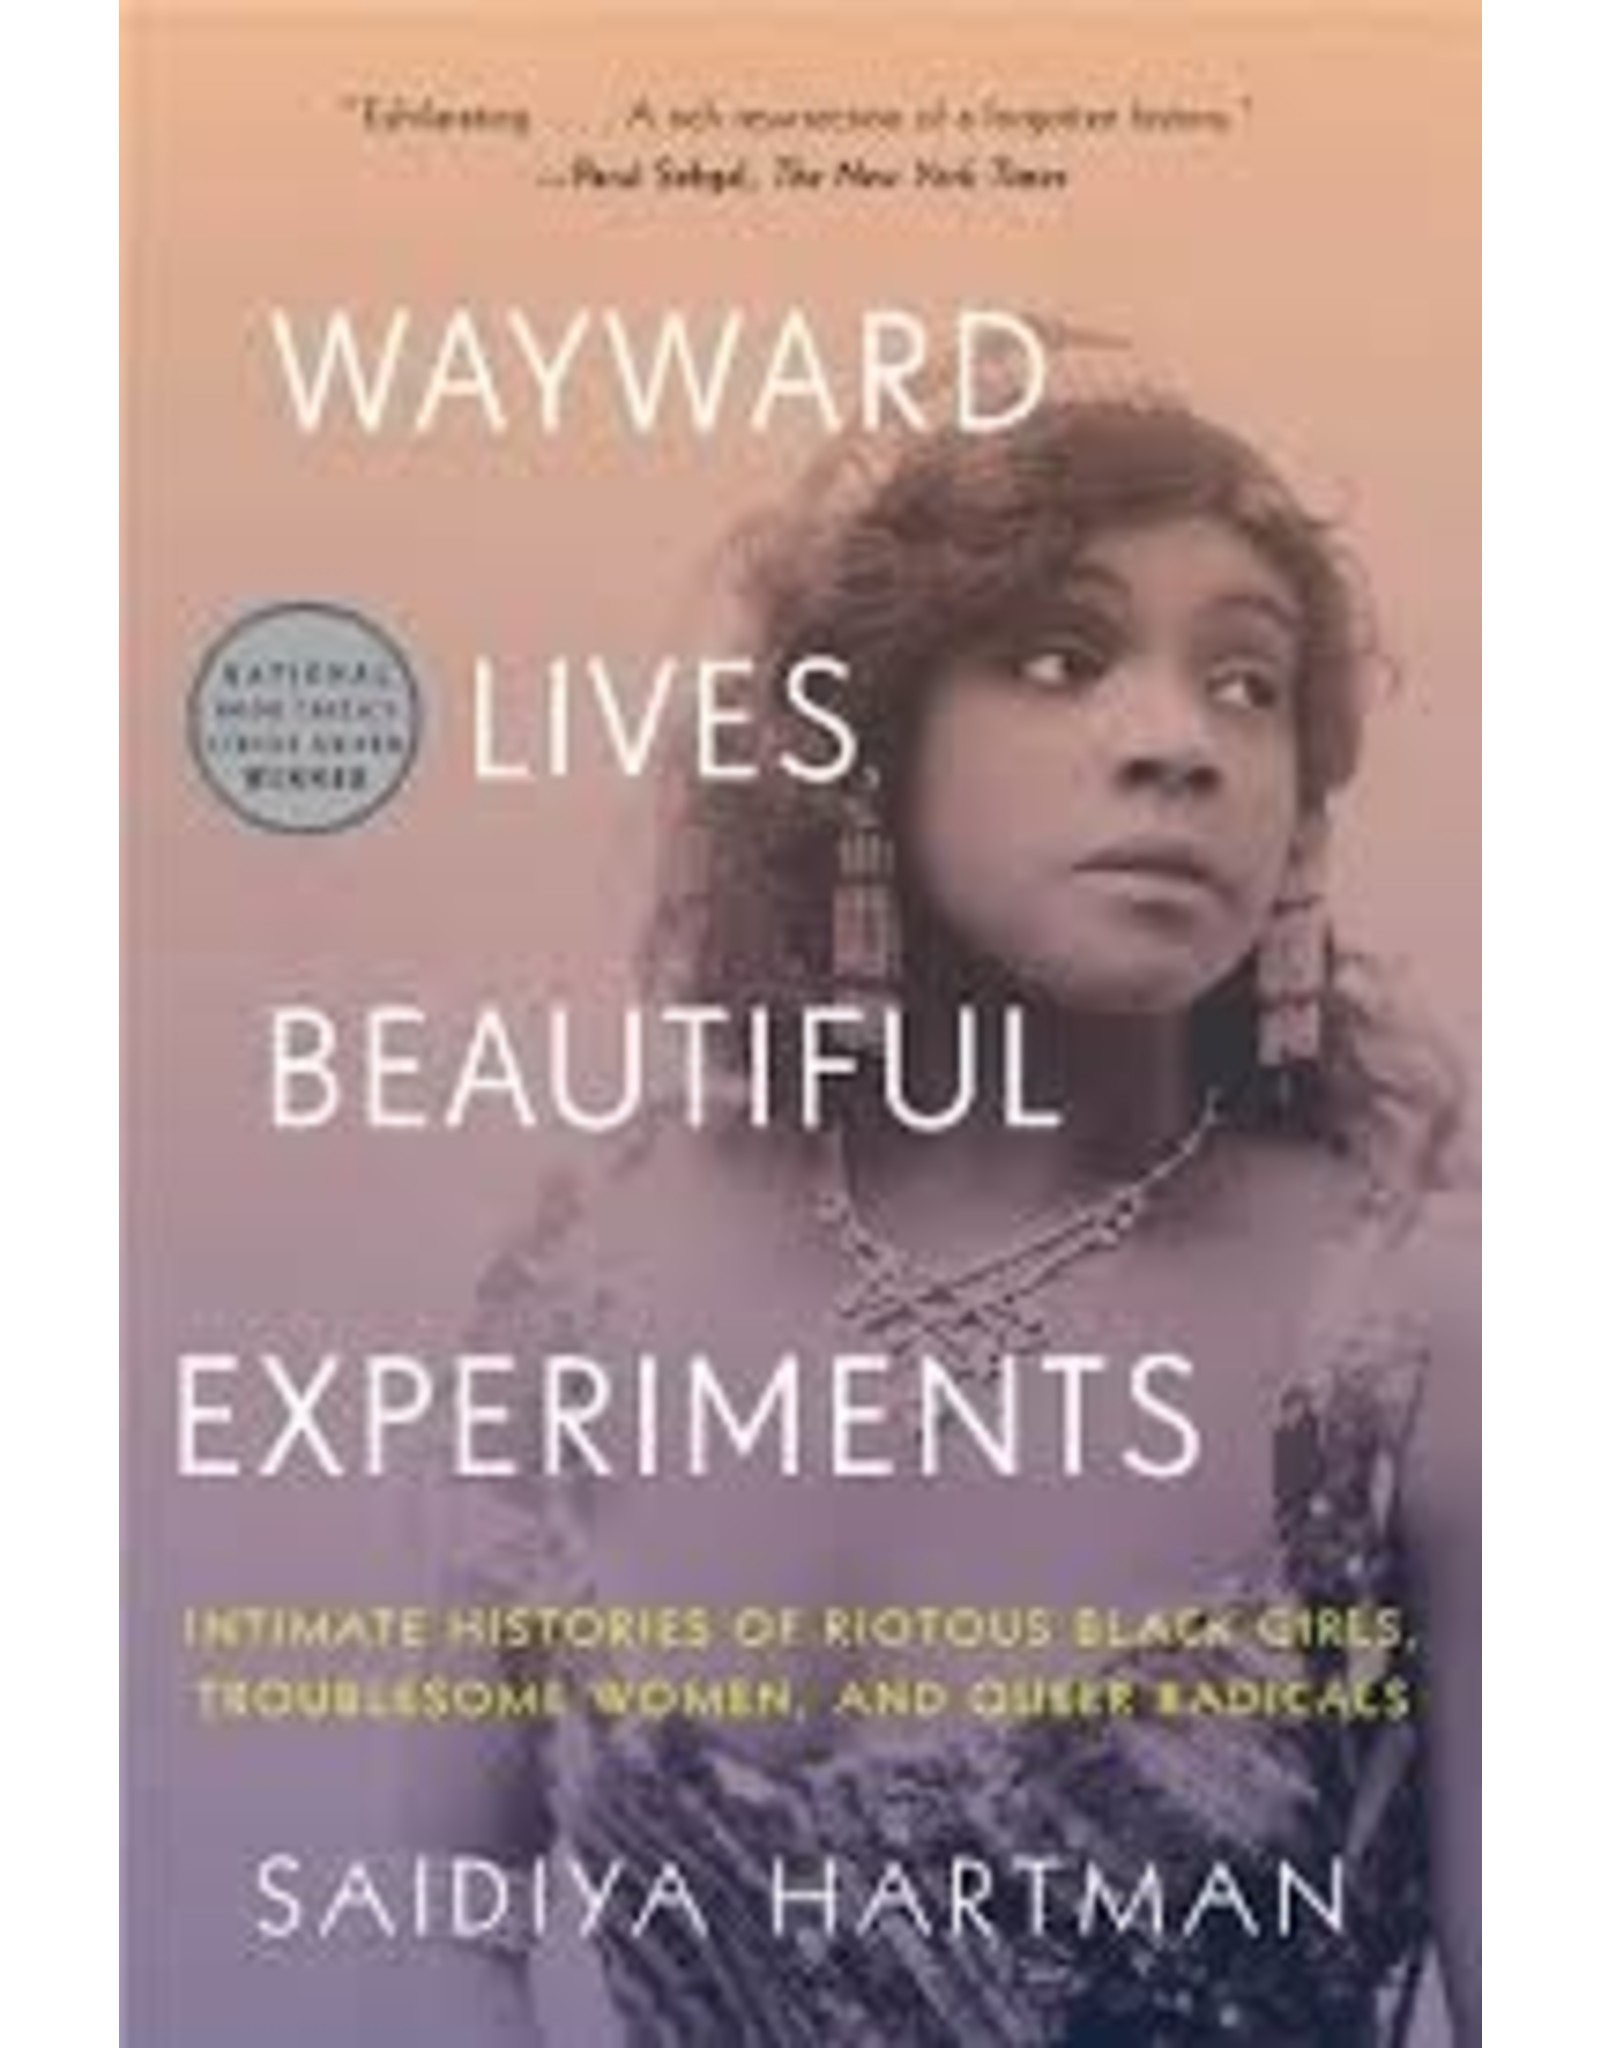 Books Wayward Lives, Beautiful Experiments by Saidiya Hartman (Holiday Catalog)